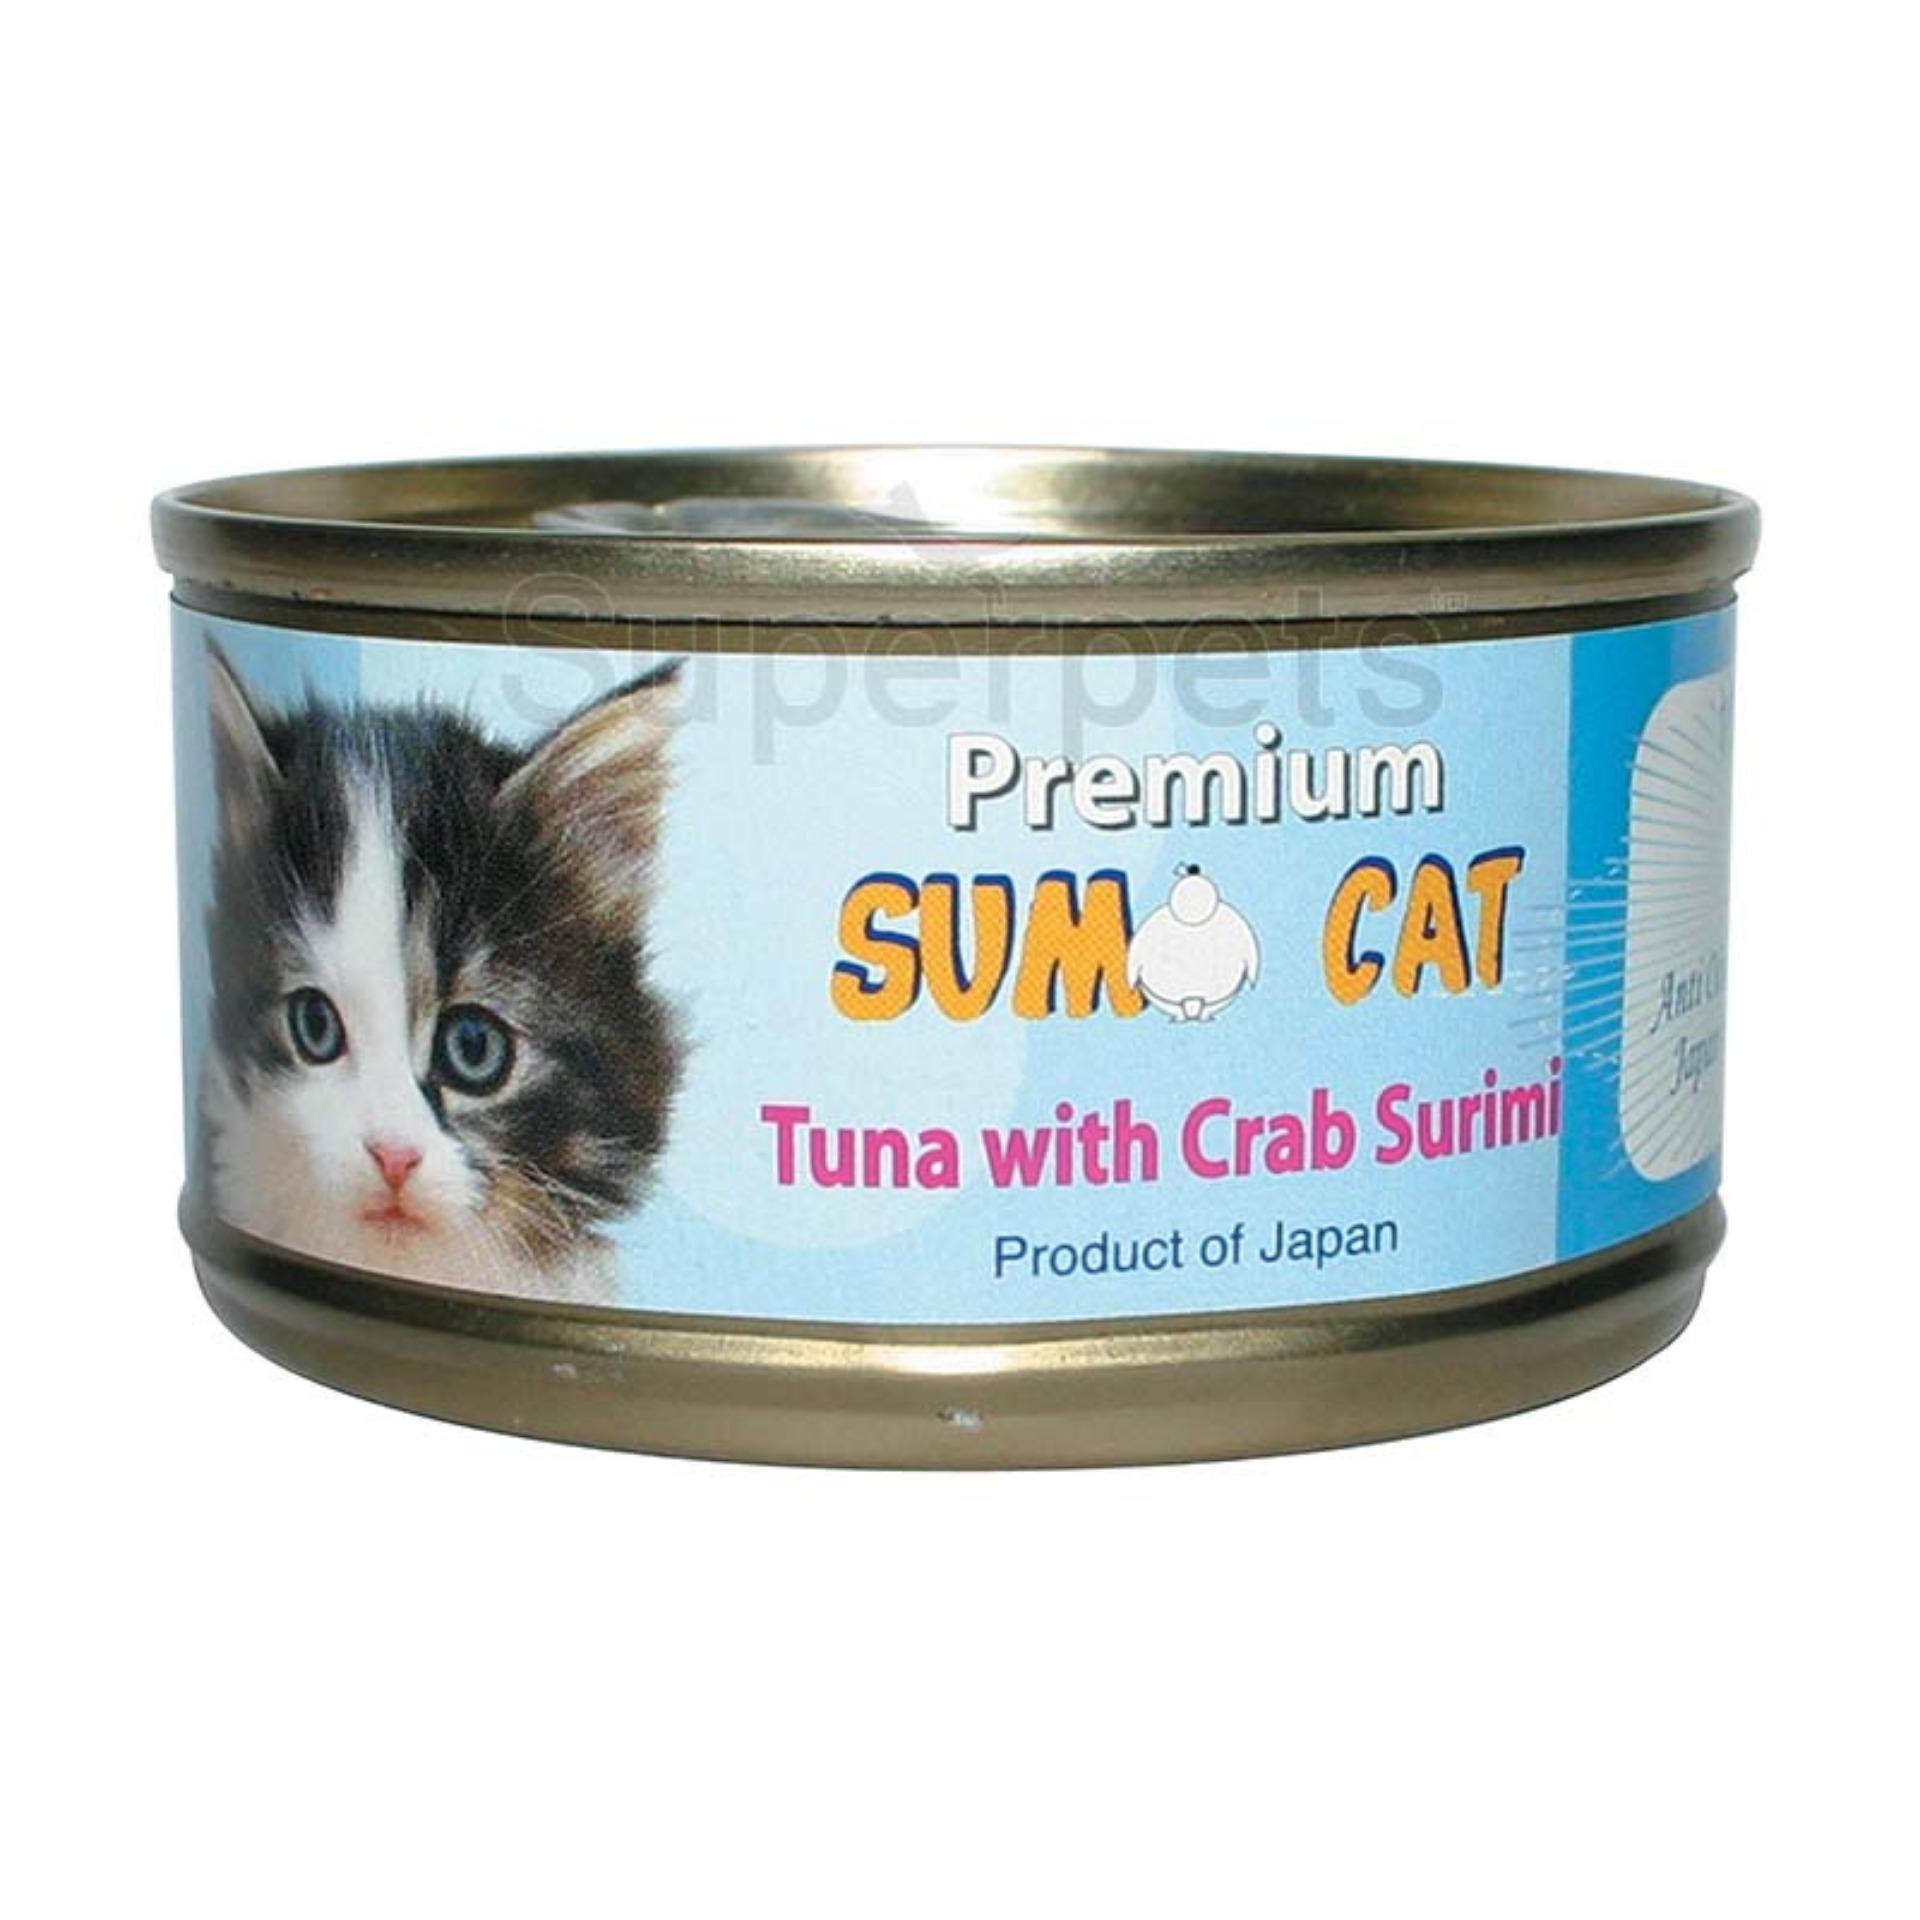 Where Can You Buy Sumo Cat Tuna With Crab Surimi 80G 24Pcs